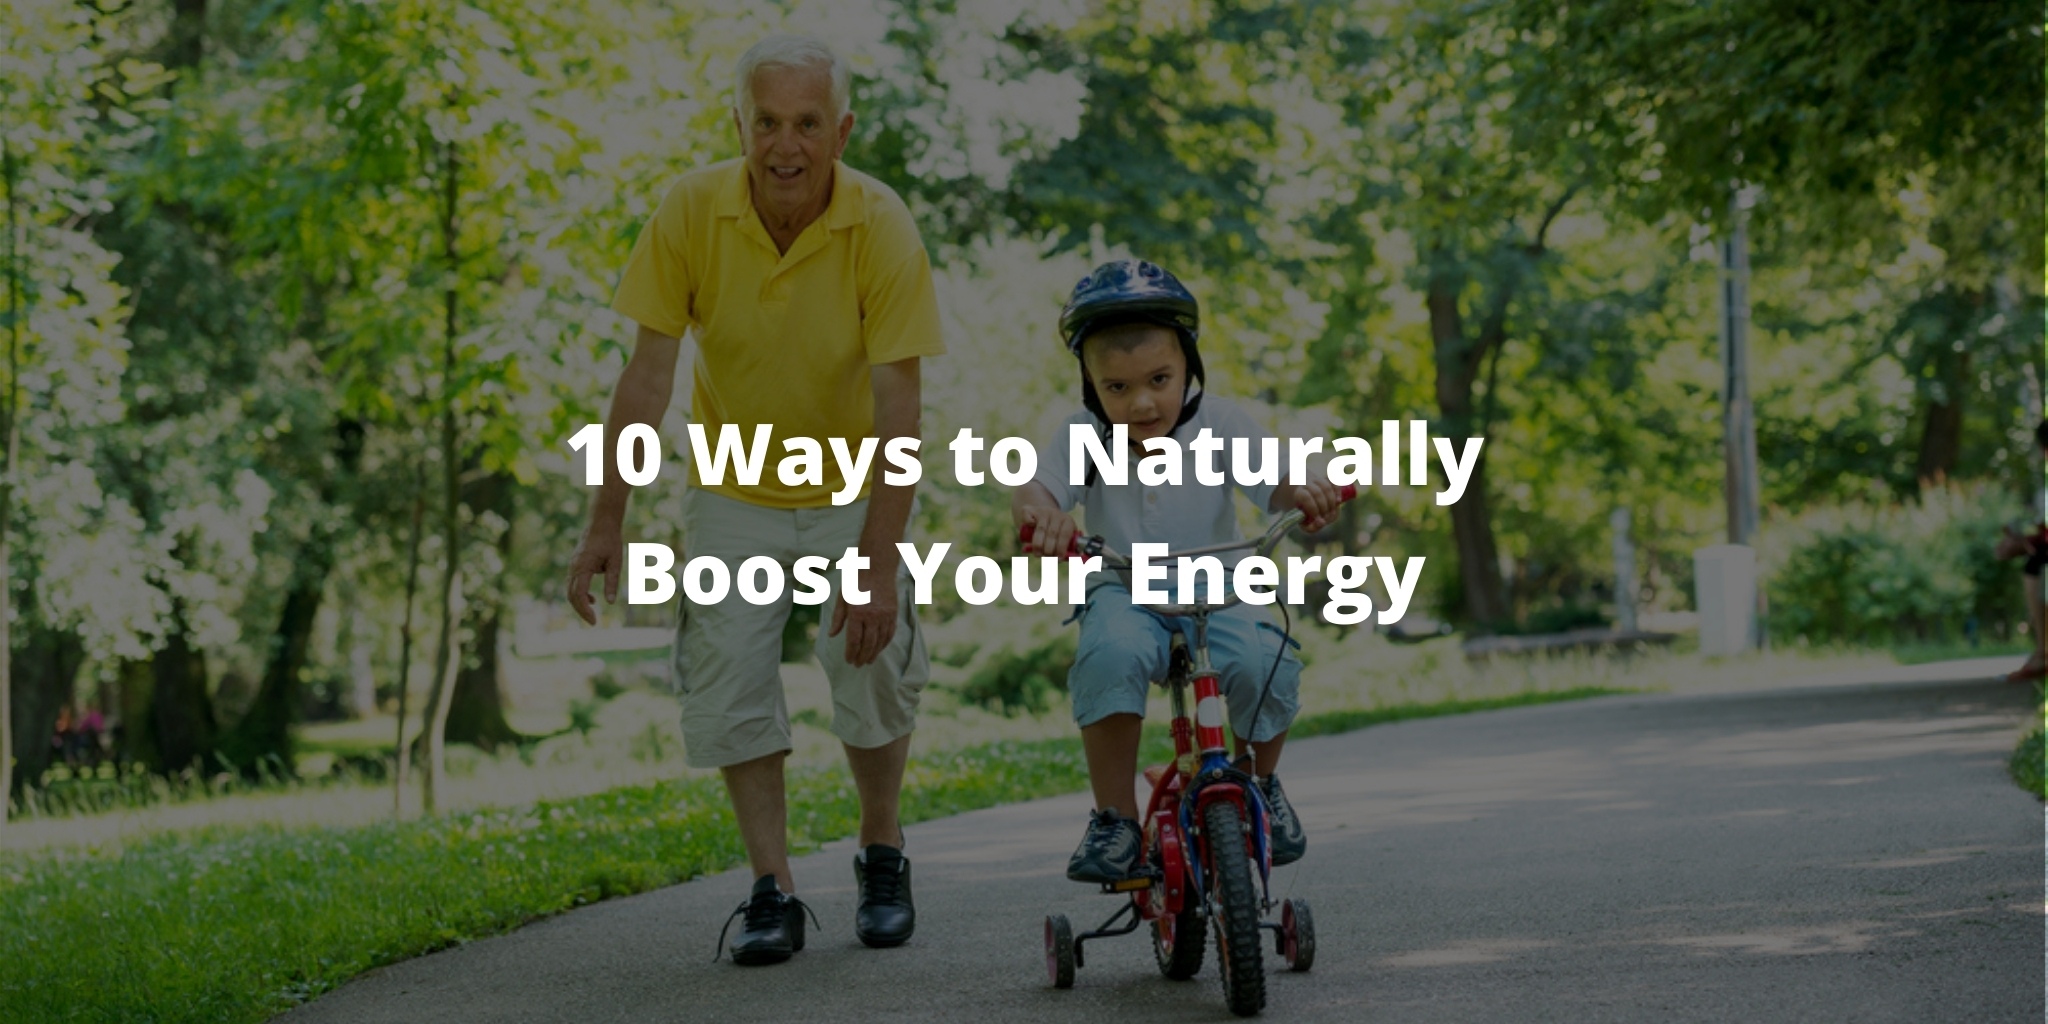 10 Ways to Naturally Boost Your Energy